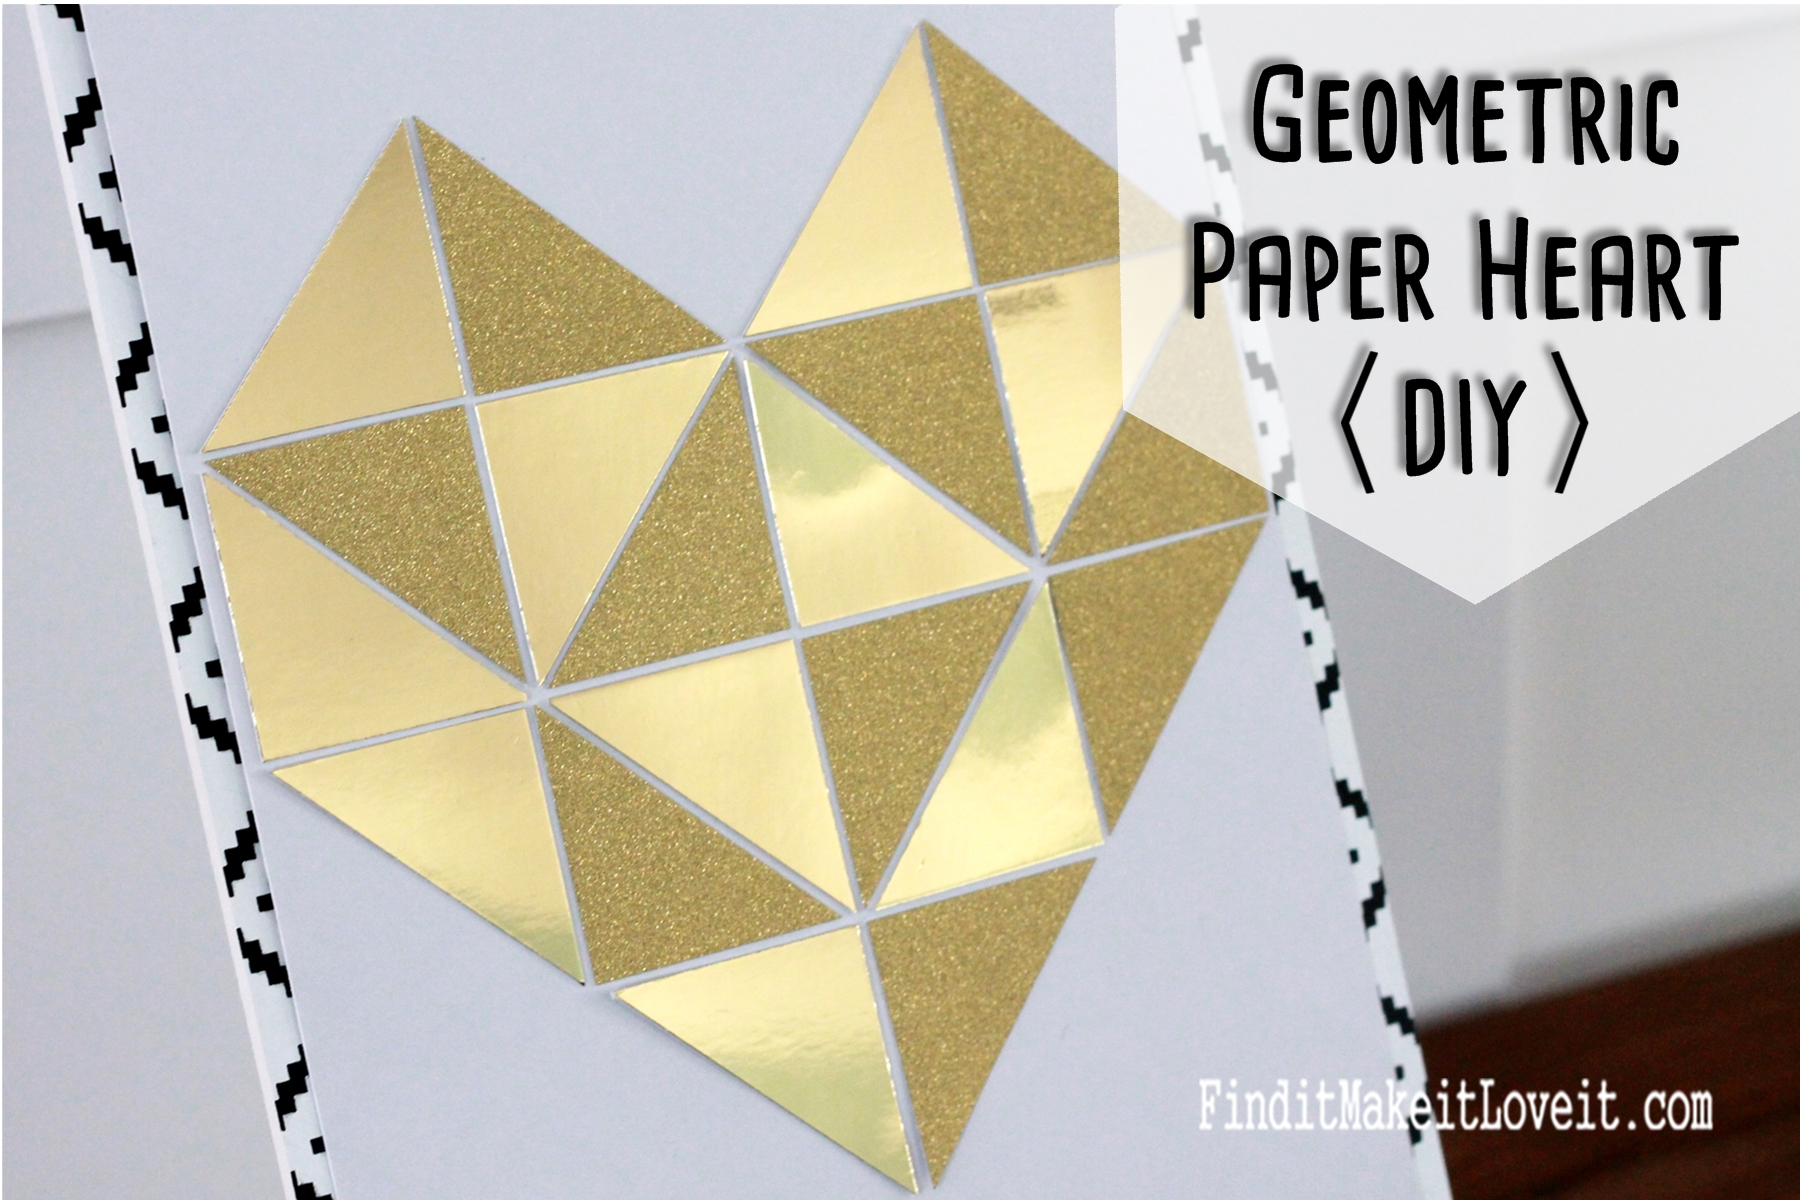 geometric paper heart diy it make it love it easy paper geometric heart goldscrapbook paper gives it the gold foil look